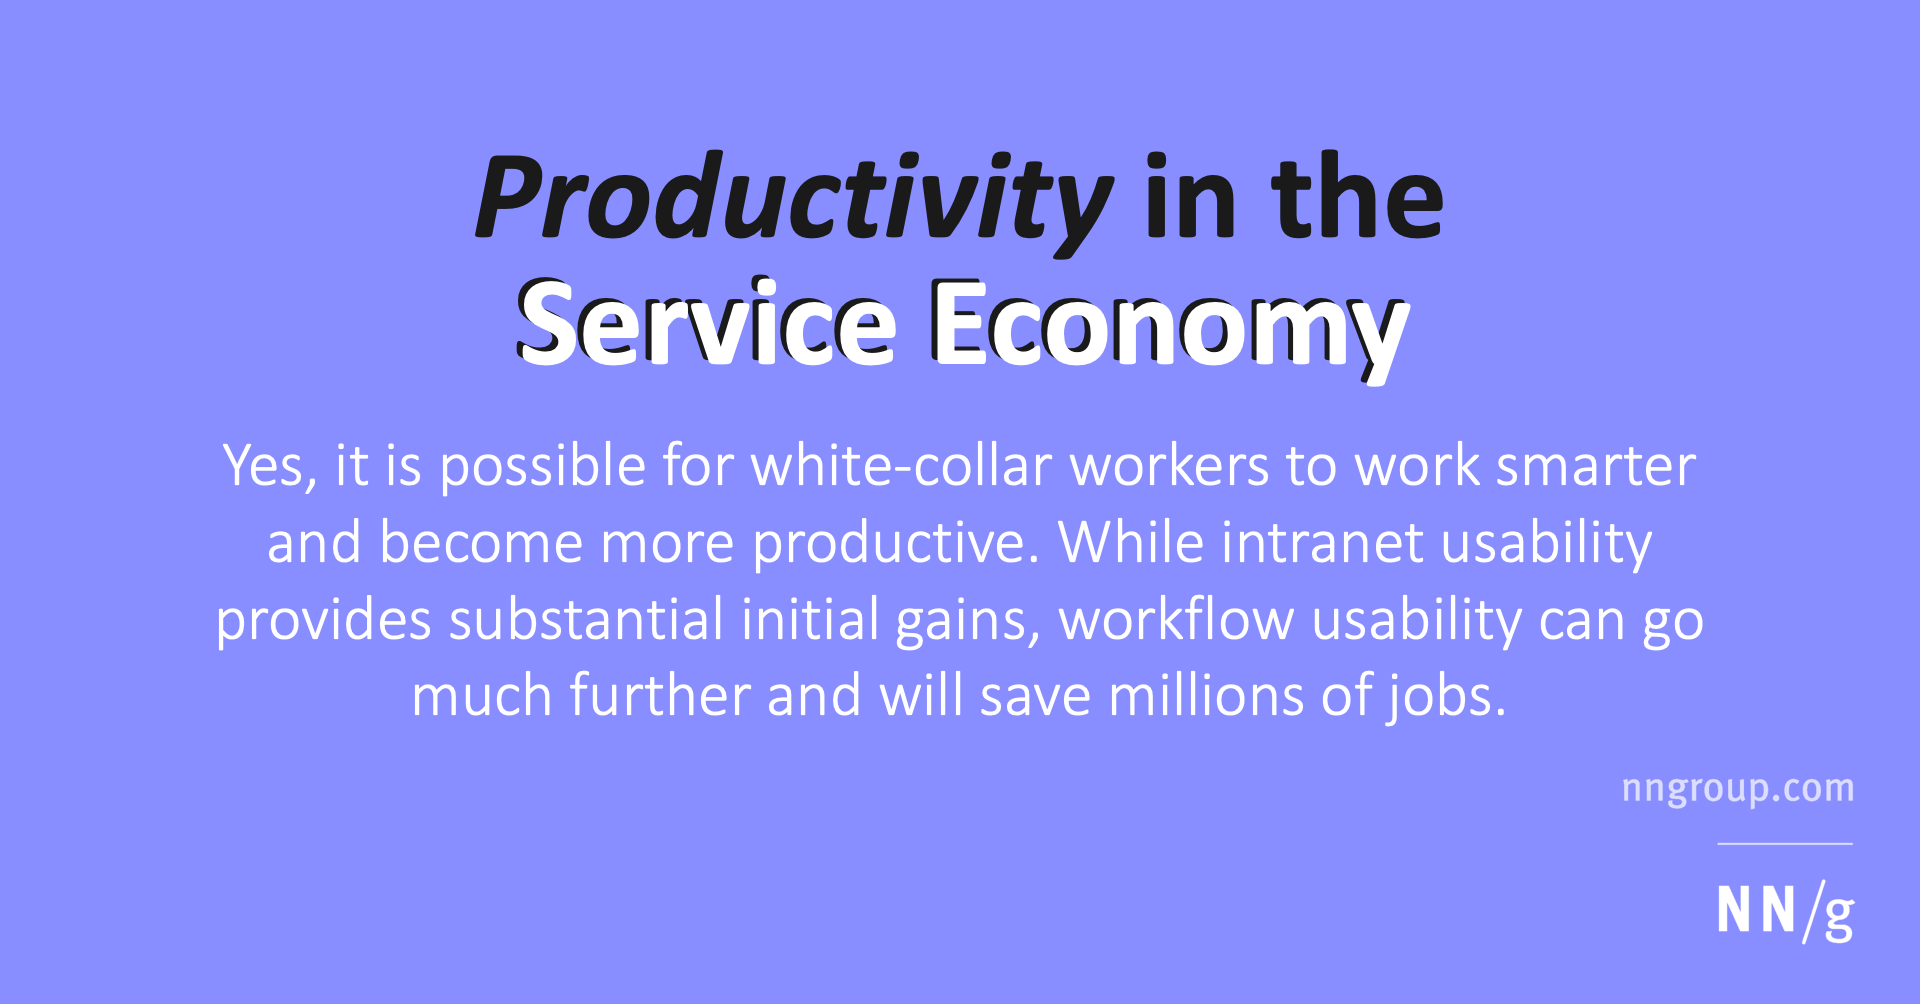 Service Economy Makes Work For >> Productivity In The Service Economy